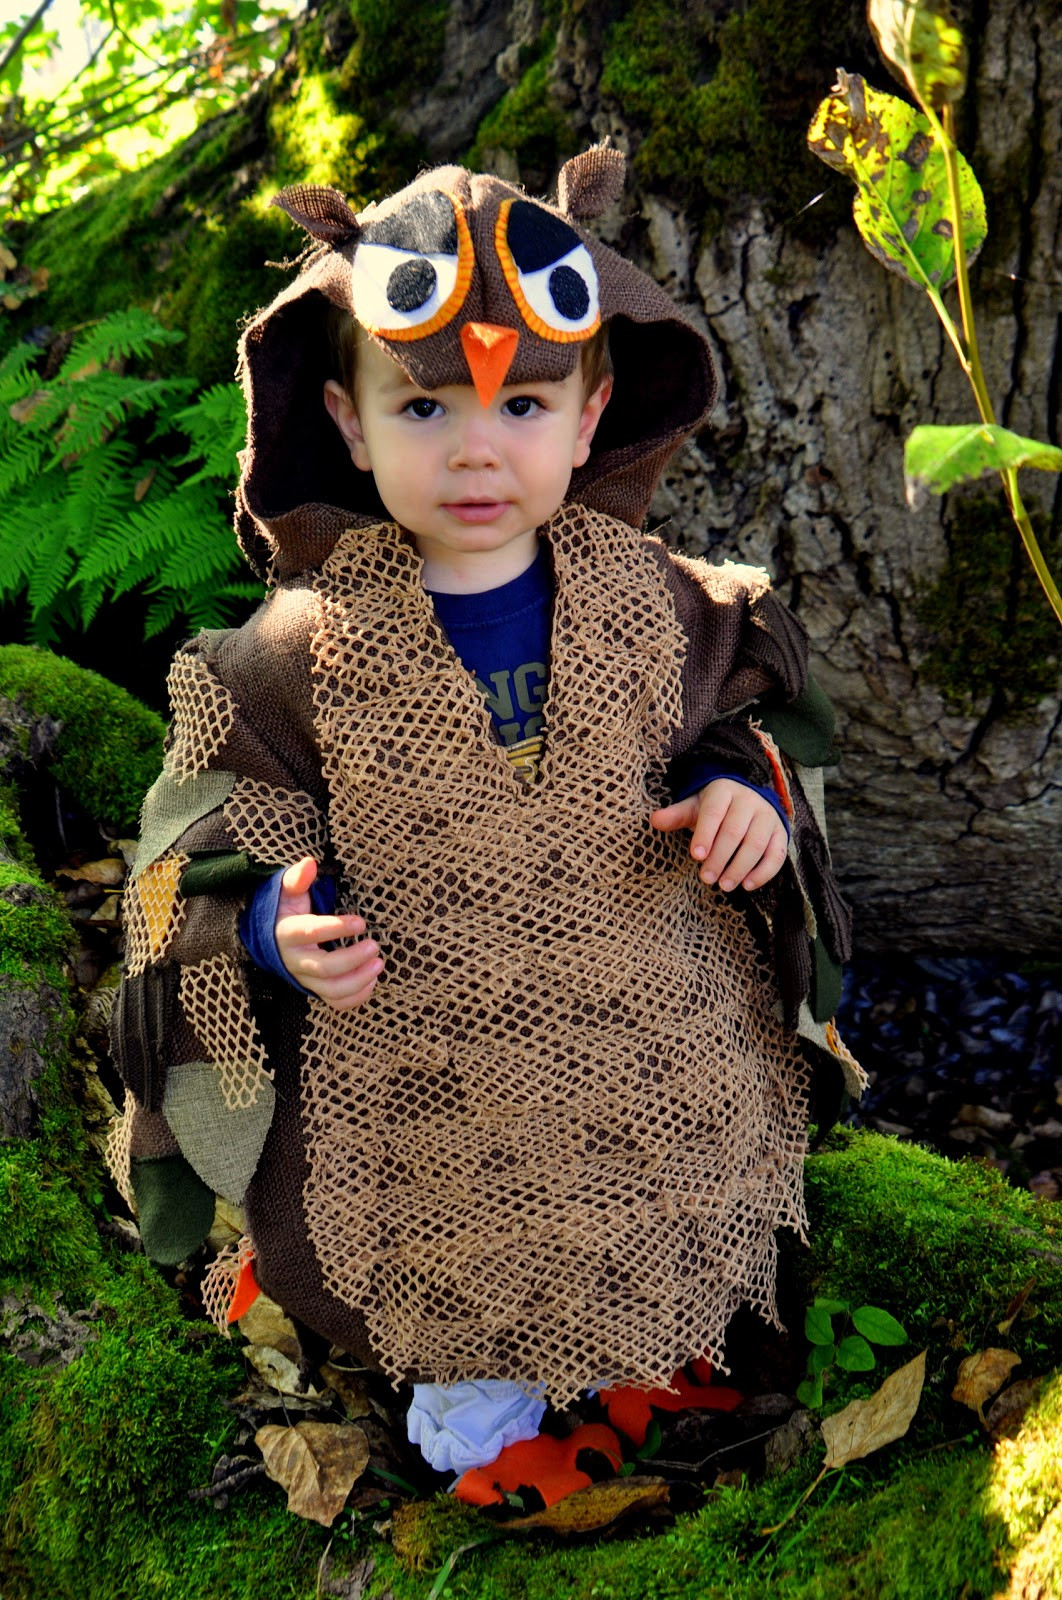 Best ideas about DIY Kids Costume . Save or Pin SweeterThanSweets Cutest Handmade DIY Kids Halloween Now.